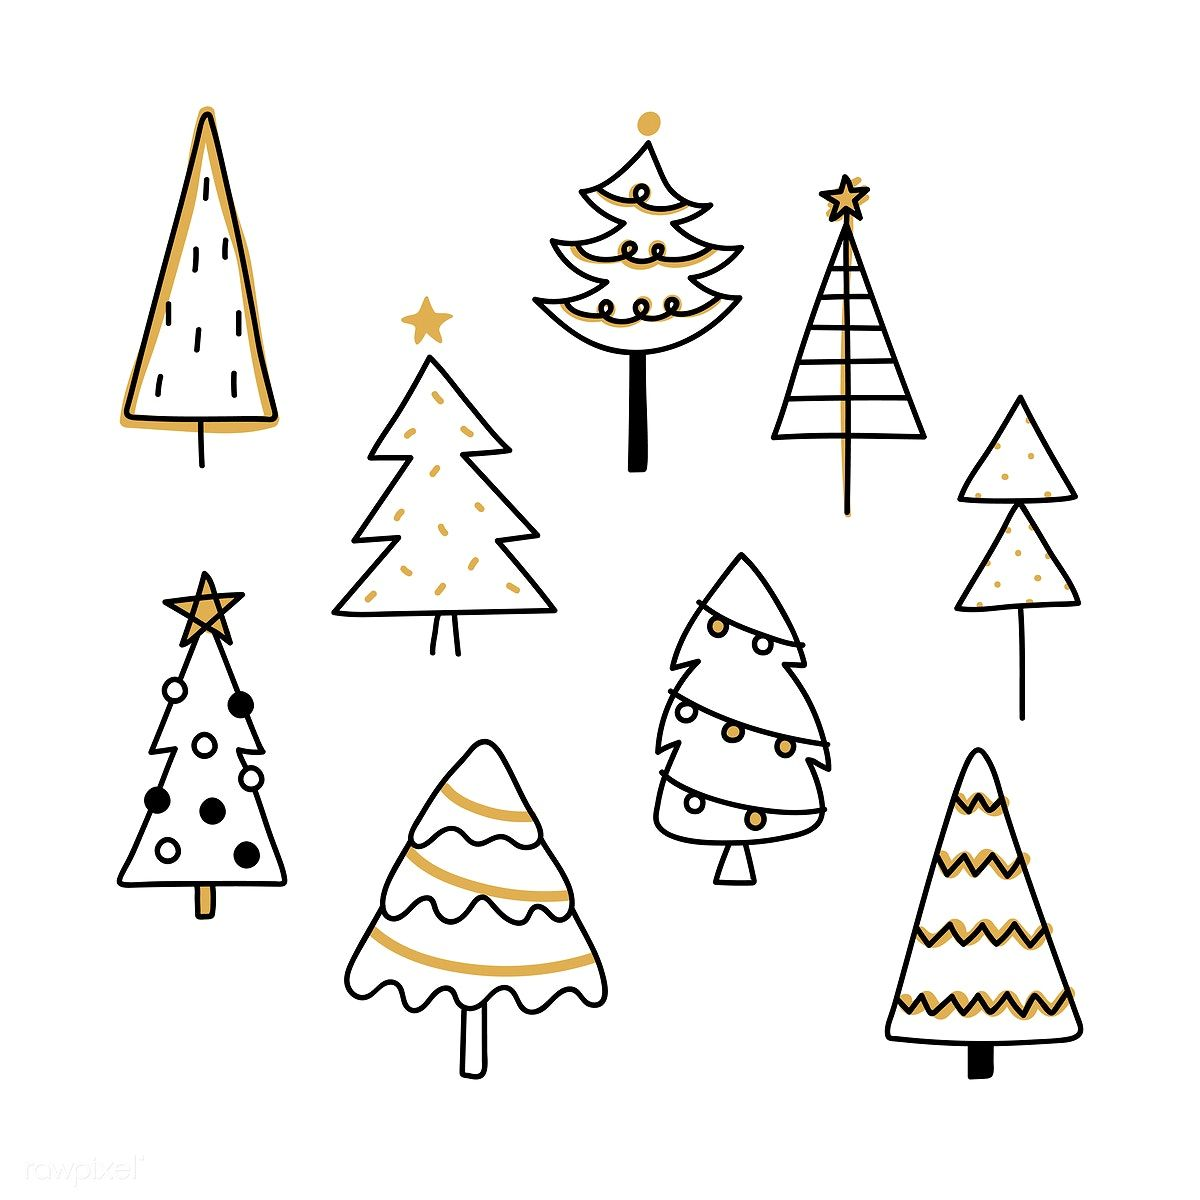 Download Premium Vector Of Christmas Pine Tree Pattern Background Drawing Christmas Tree Drawing Christmas Doodles Tree Doodle